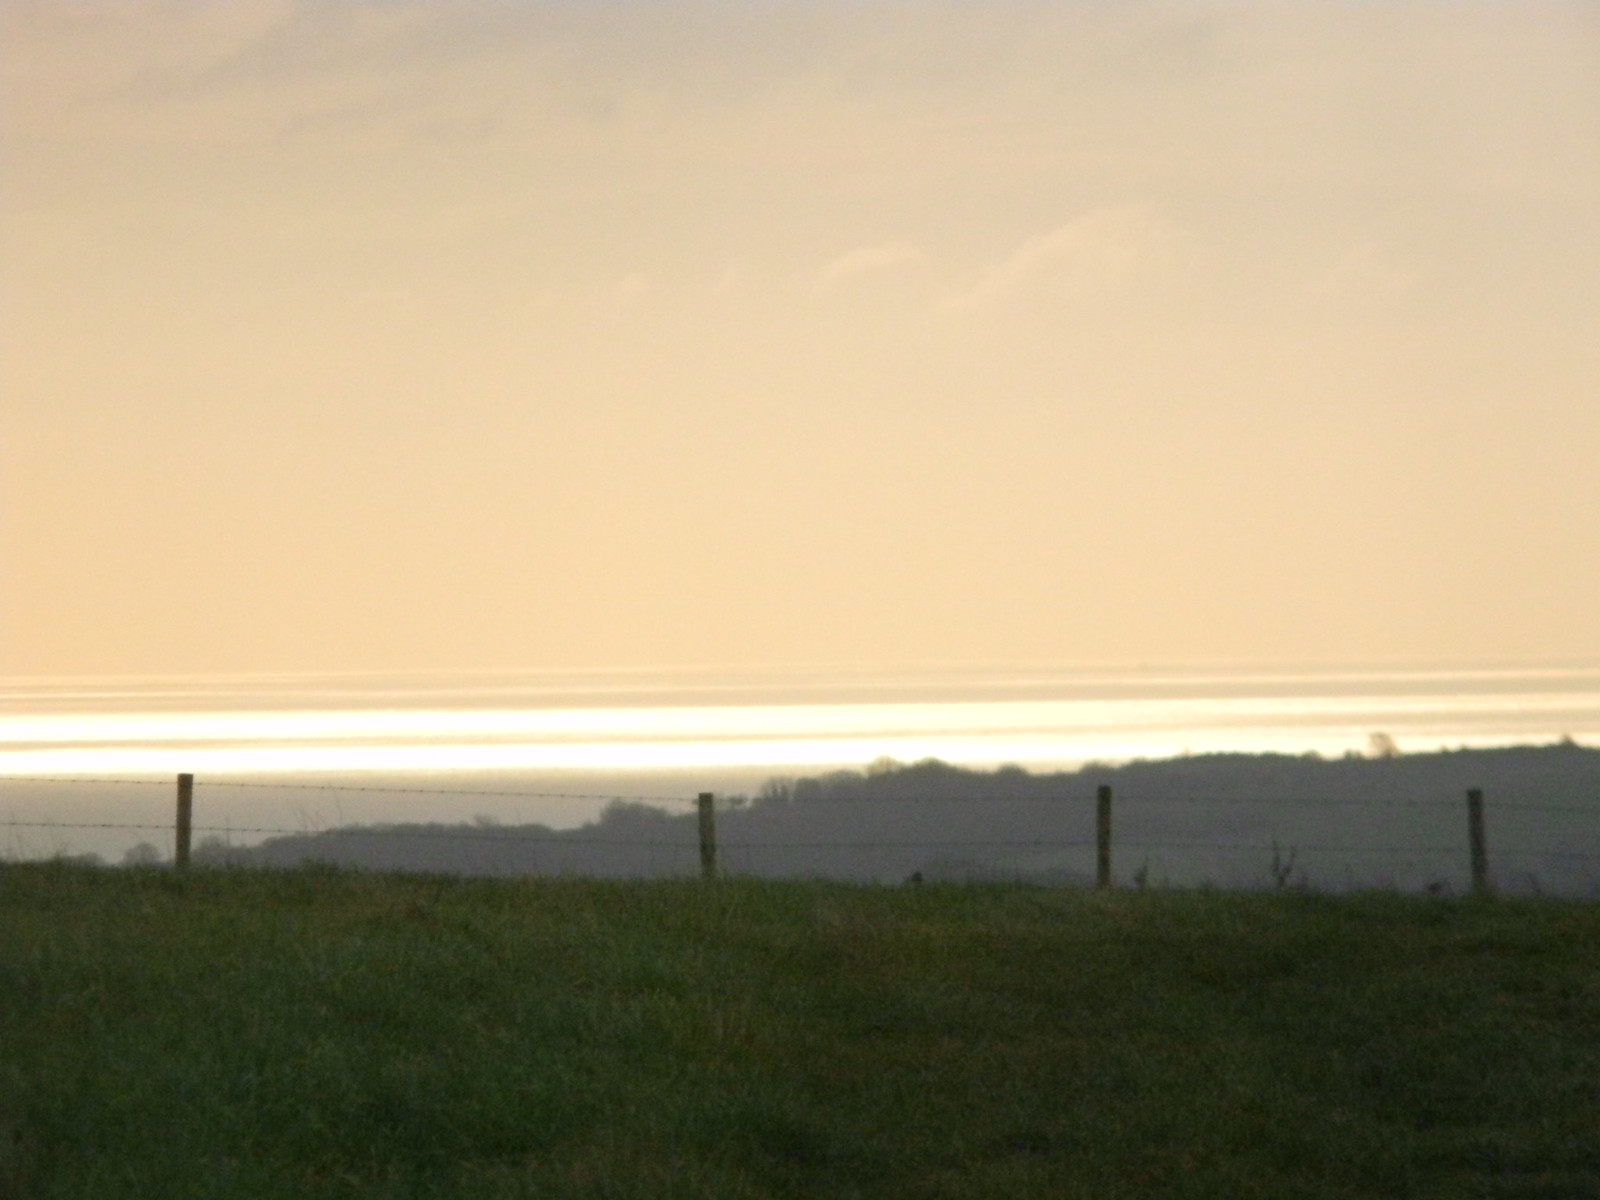 The sea from afar Hassocks to Brighton